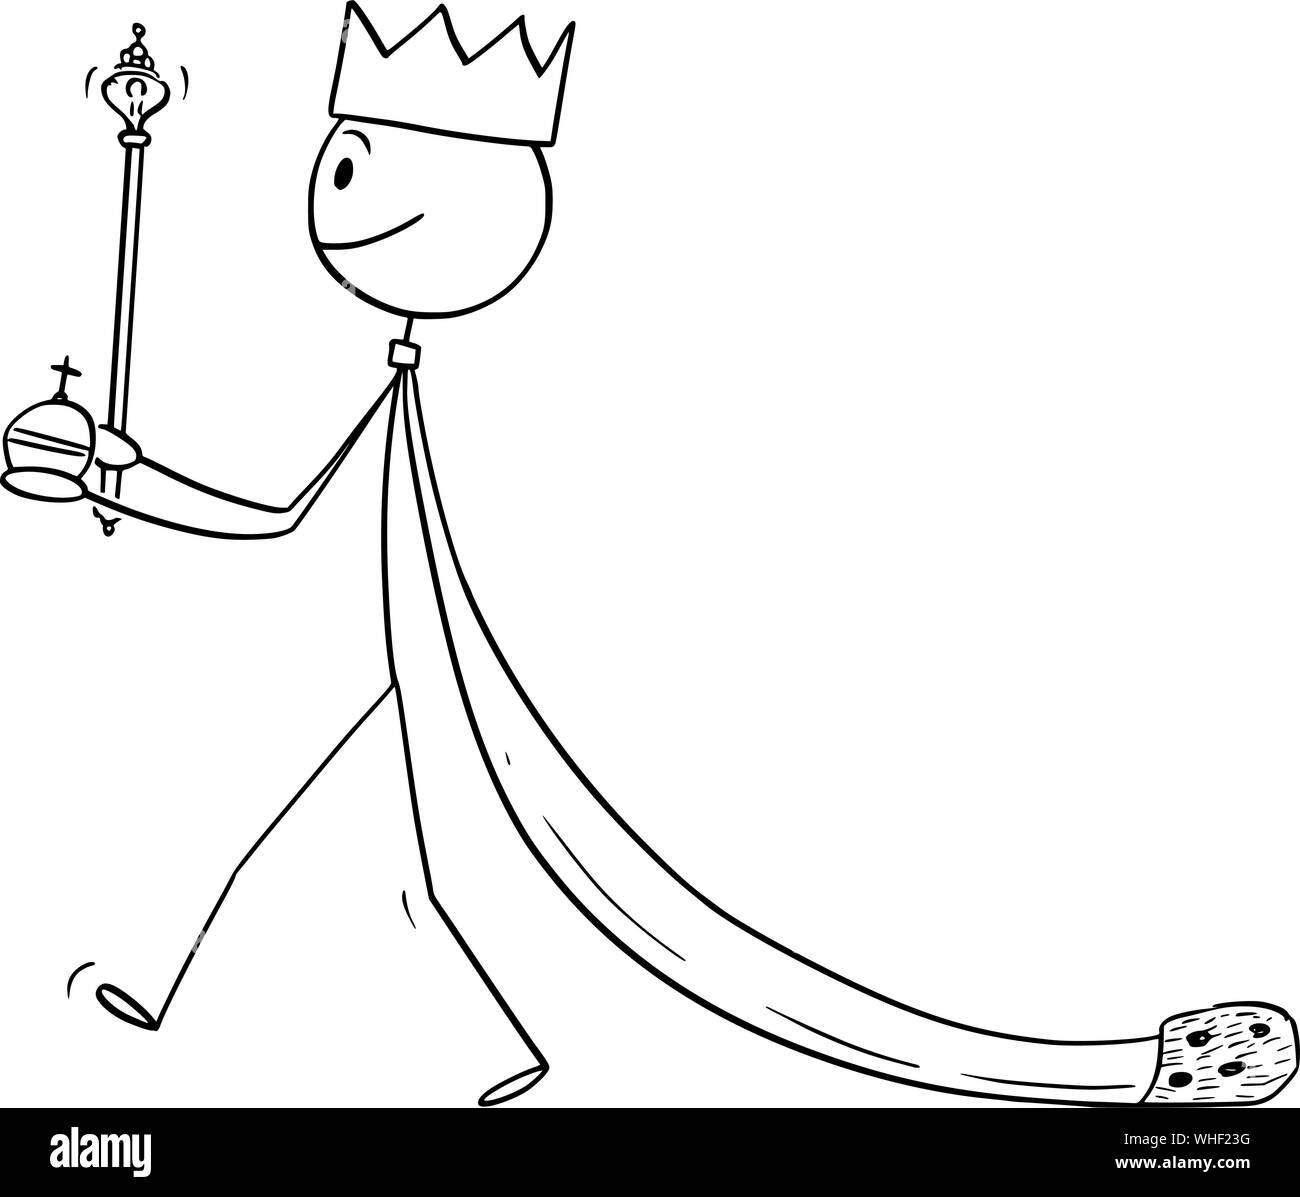 Vector Cartoon Stick Figure Drawing Conceptual Illustration Of Fantasy Or Medieval King Walking In Robe Stock Vector Image Art Alamy